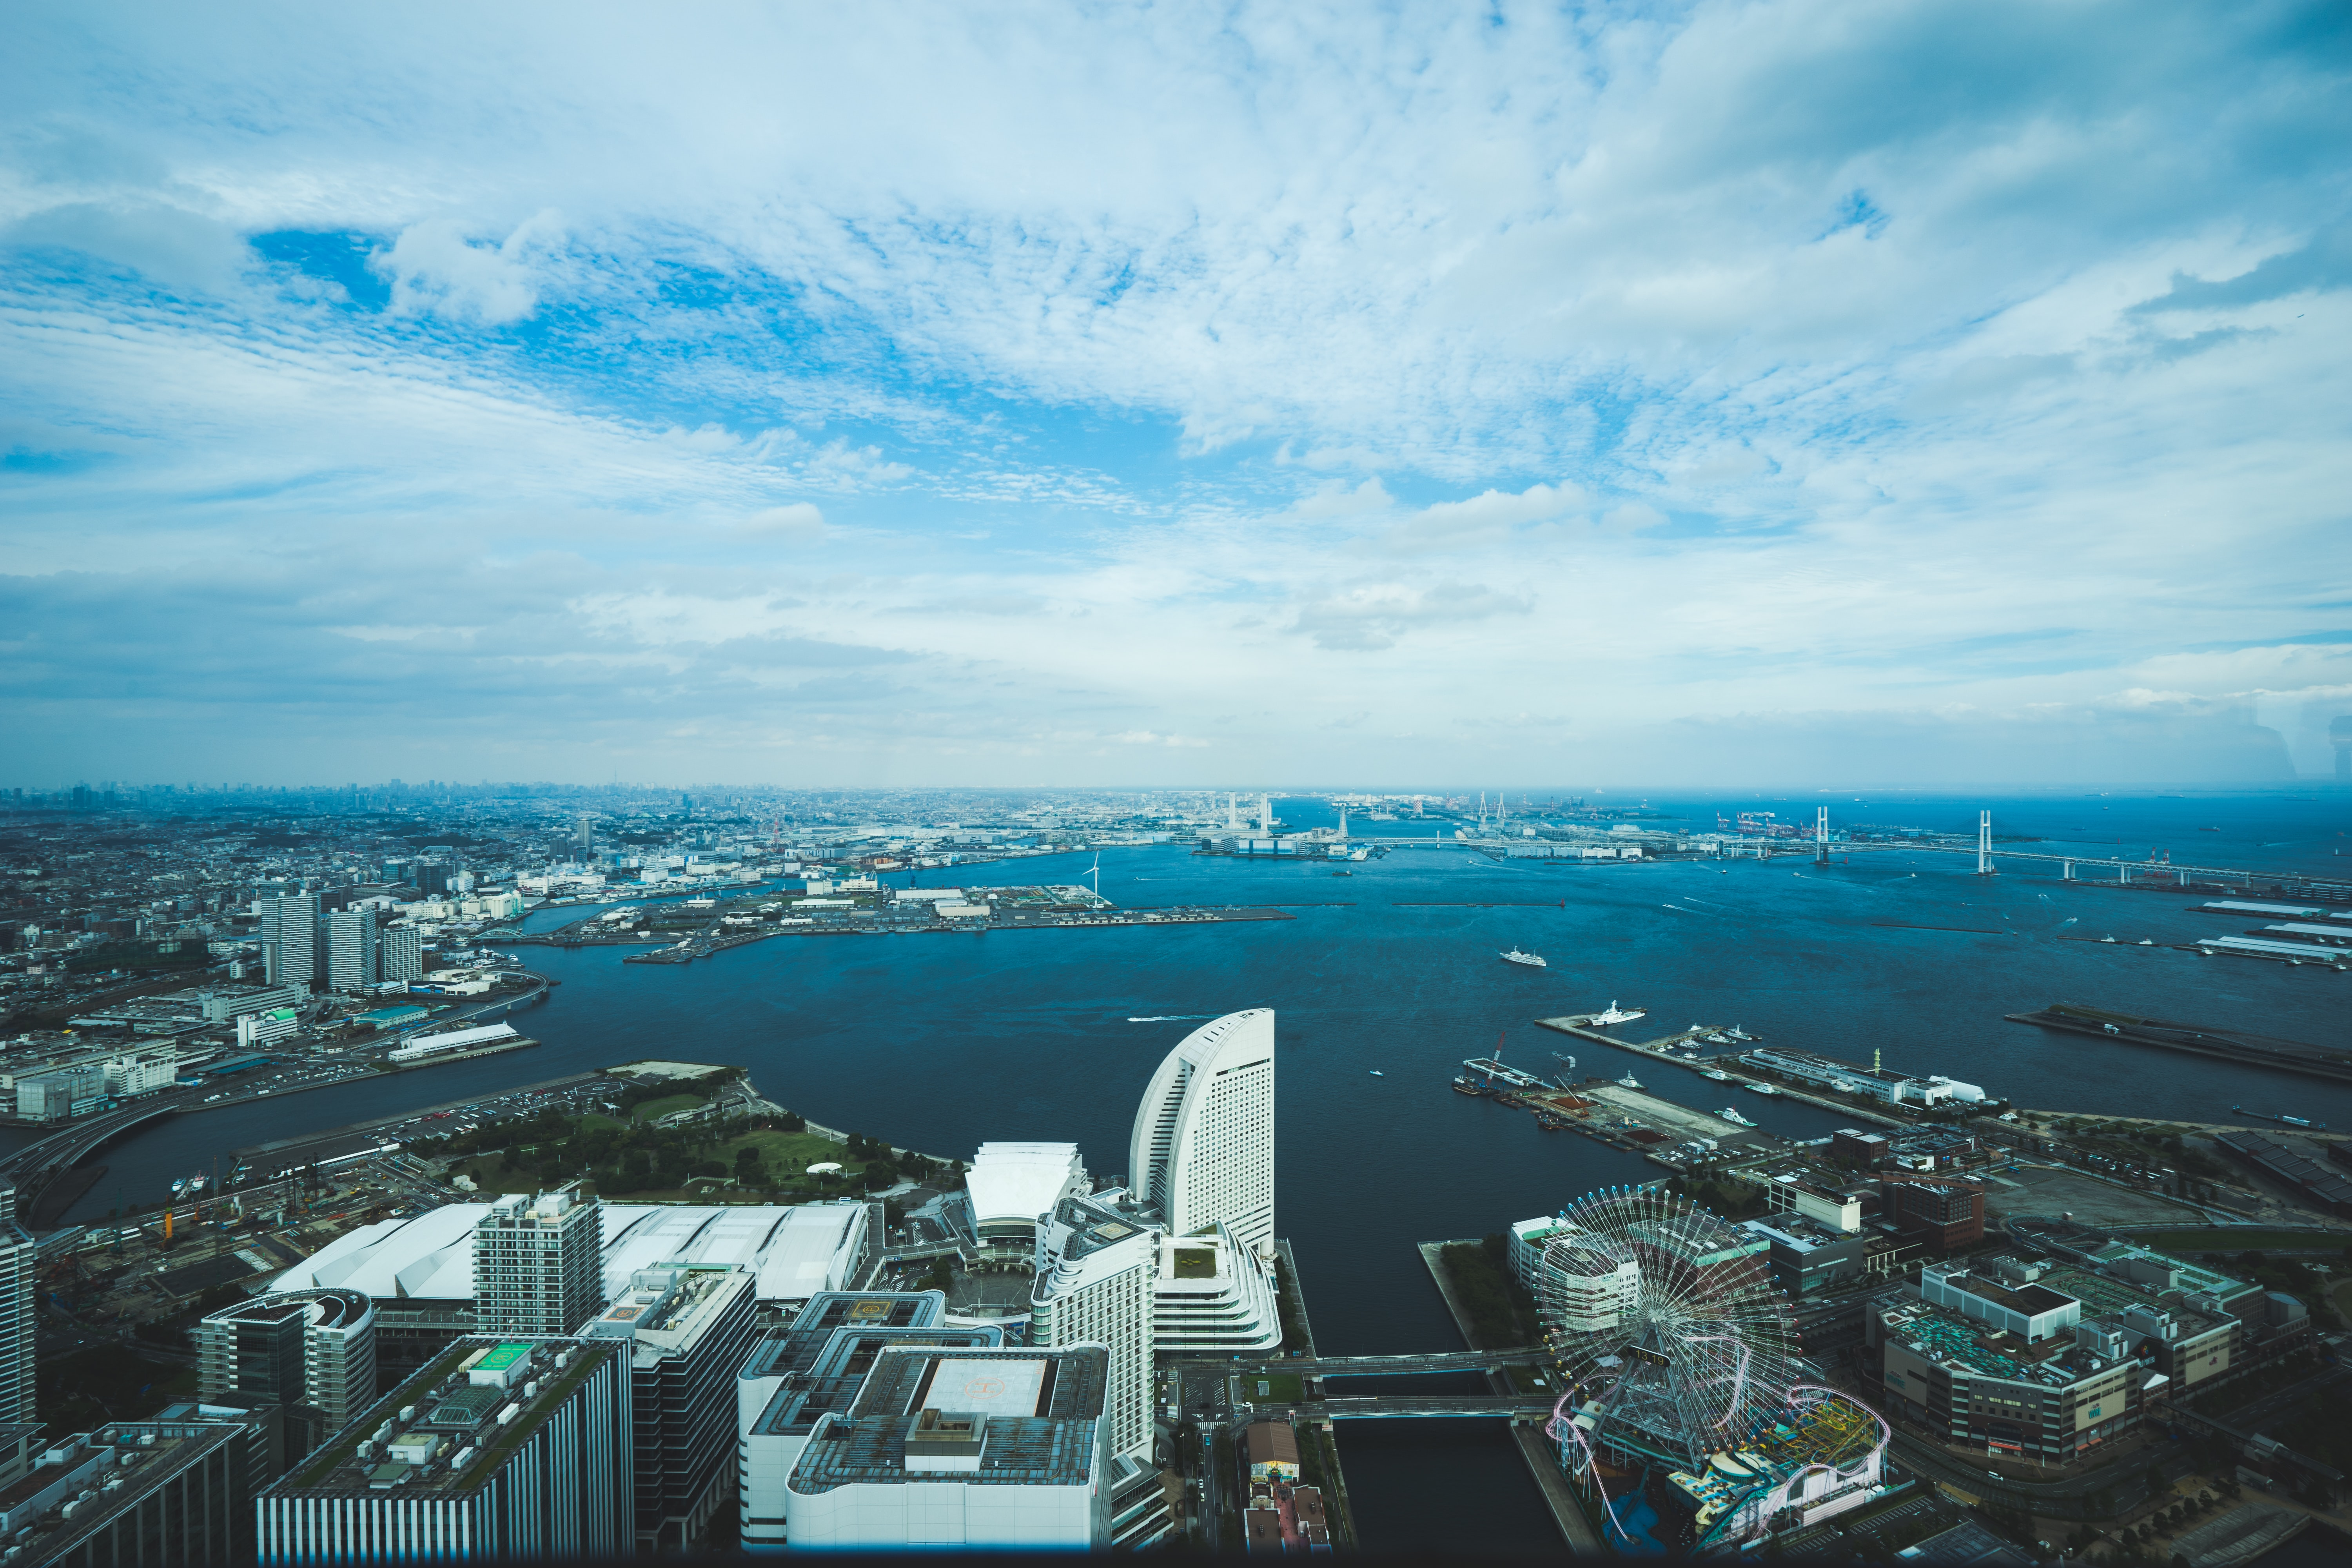 bird's eye view of city beside wide body of water during daytime